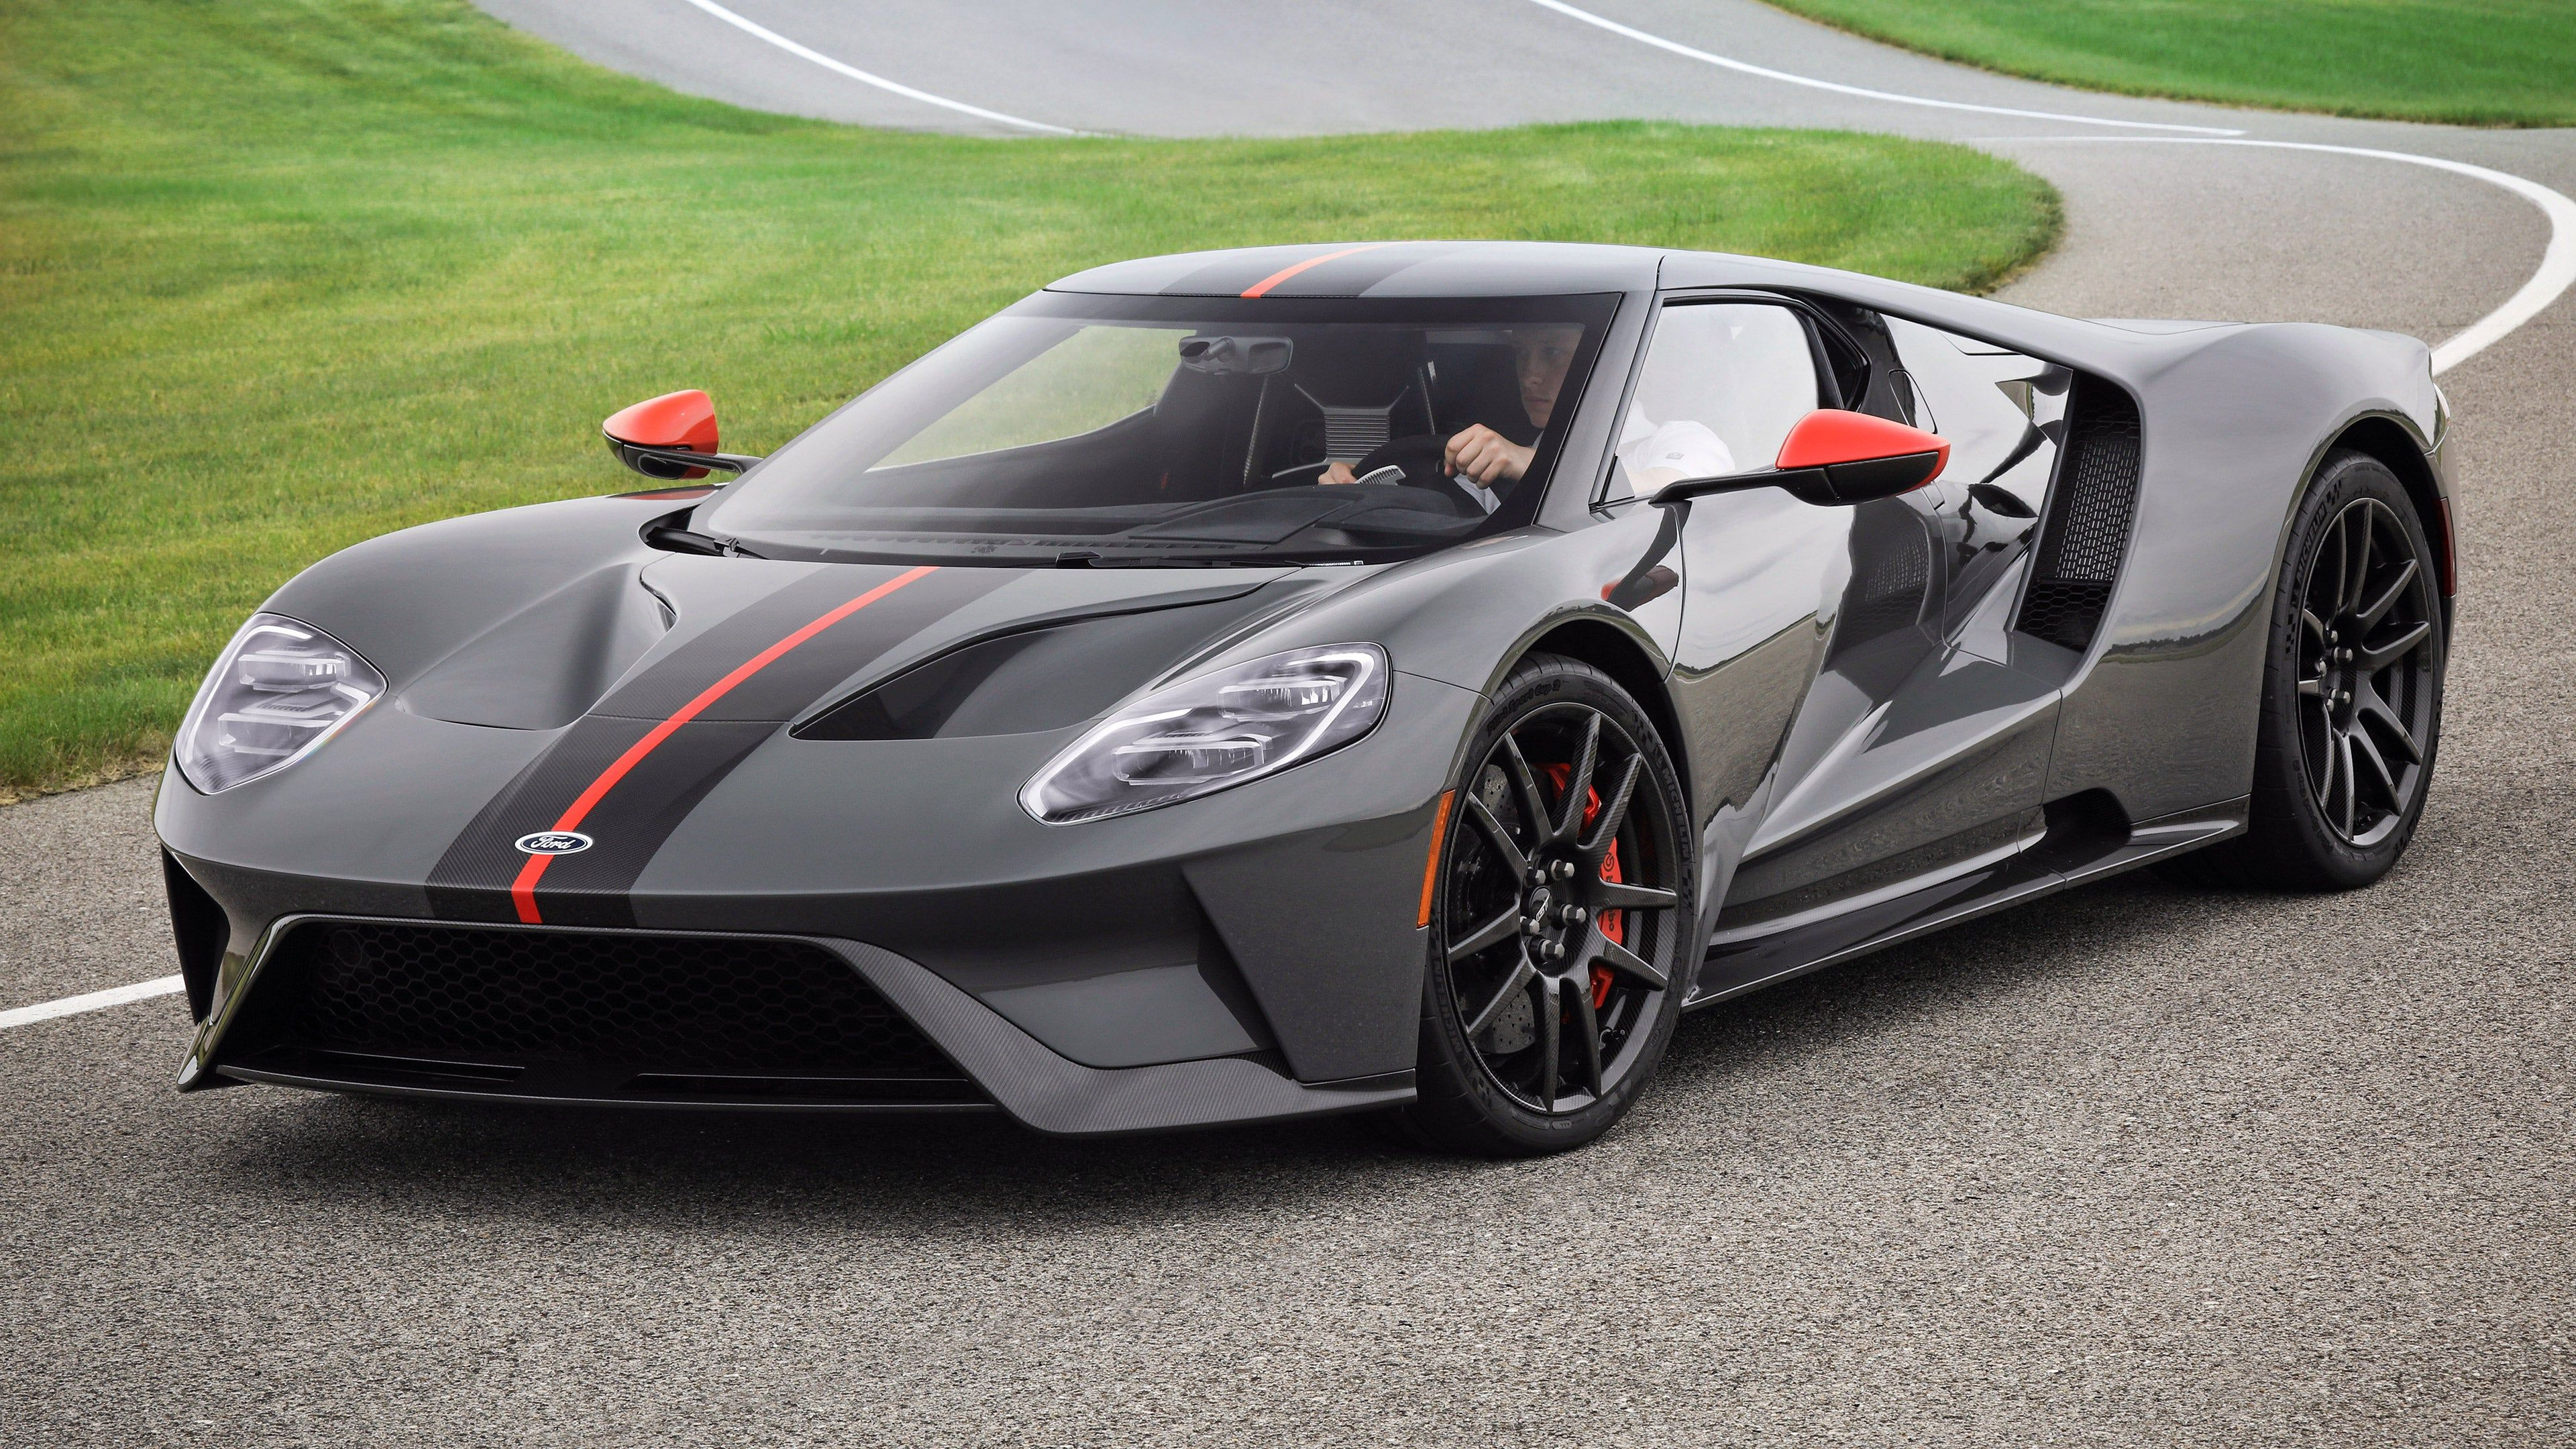 2019 Ford Gt Carbon Series Carporn Ford Gt Ford Trucks Ford Gt40